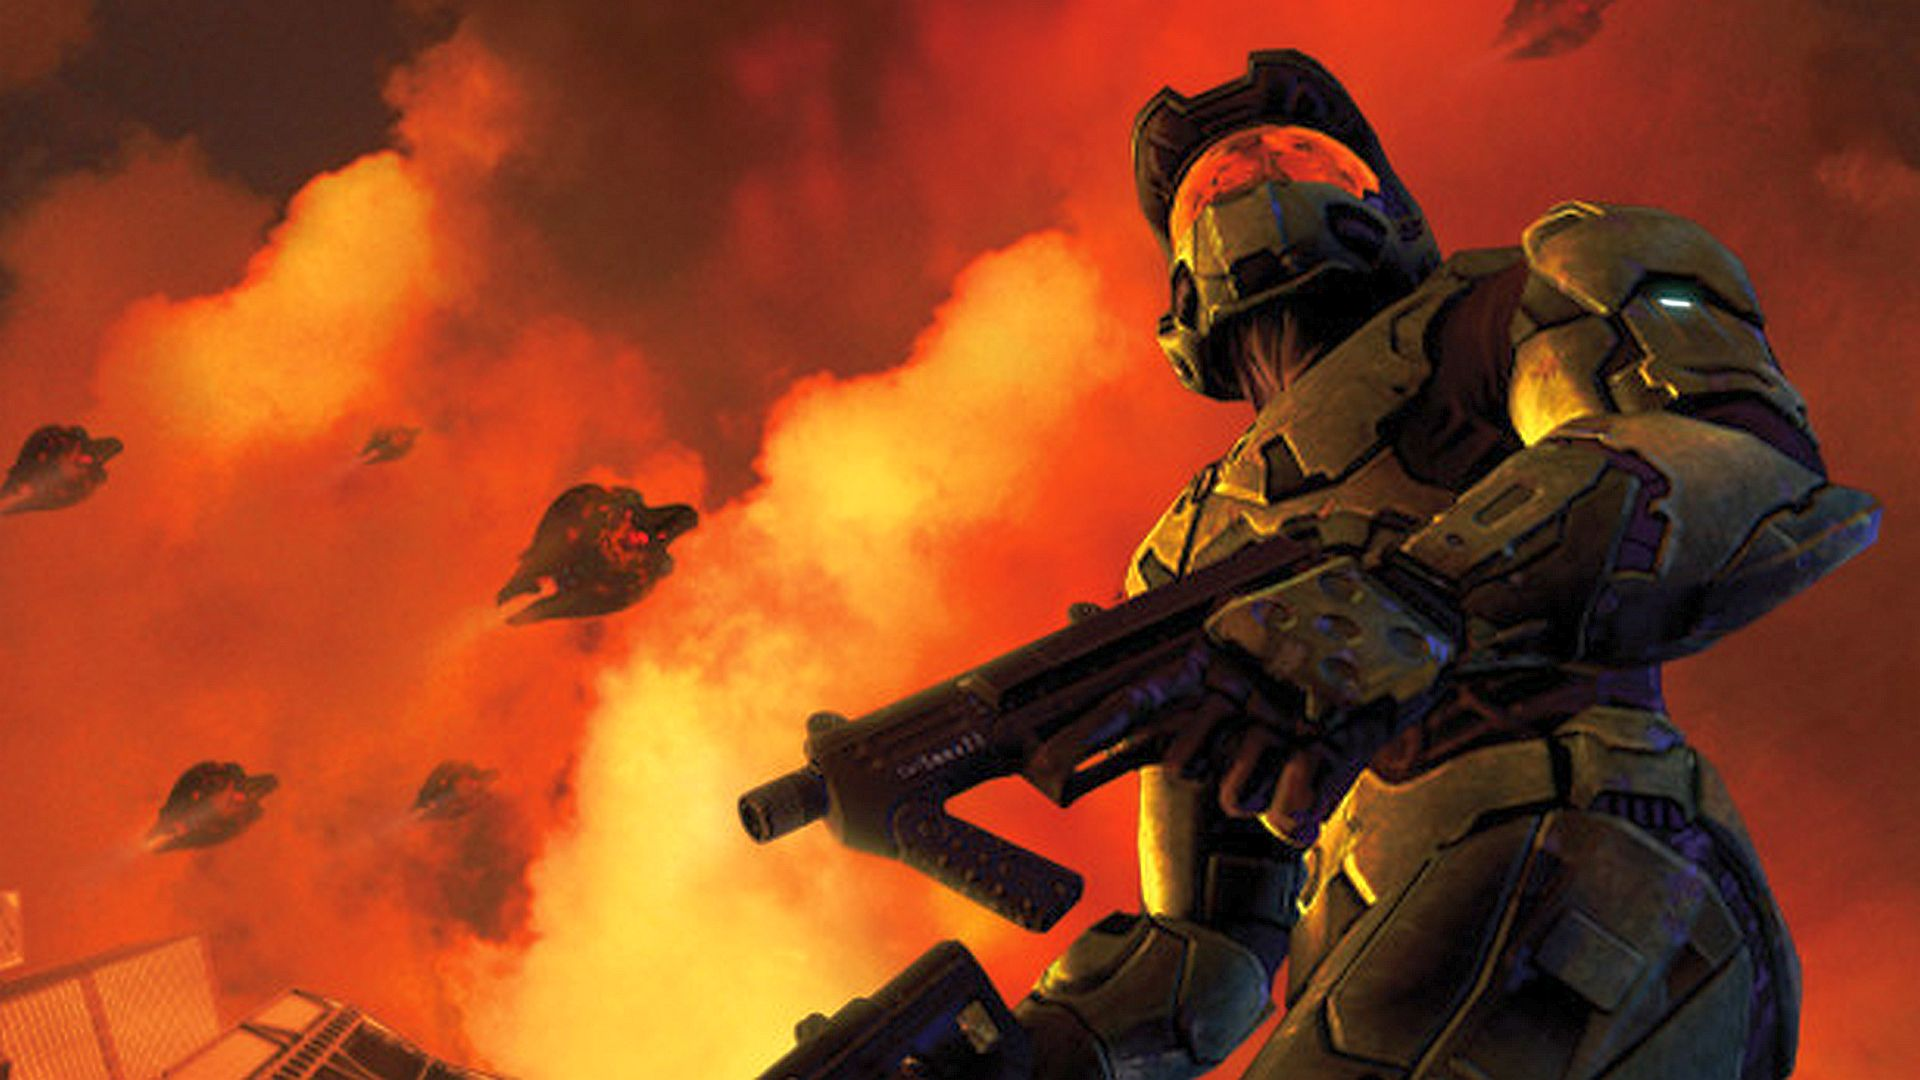 Halo 2 and Halo 3 modding tools have come to Steam